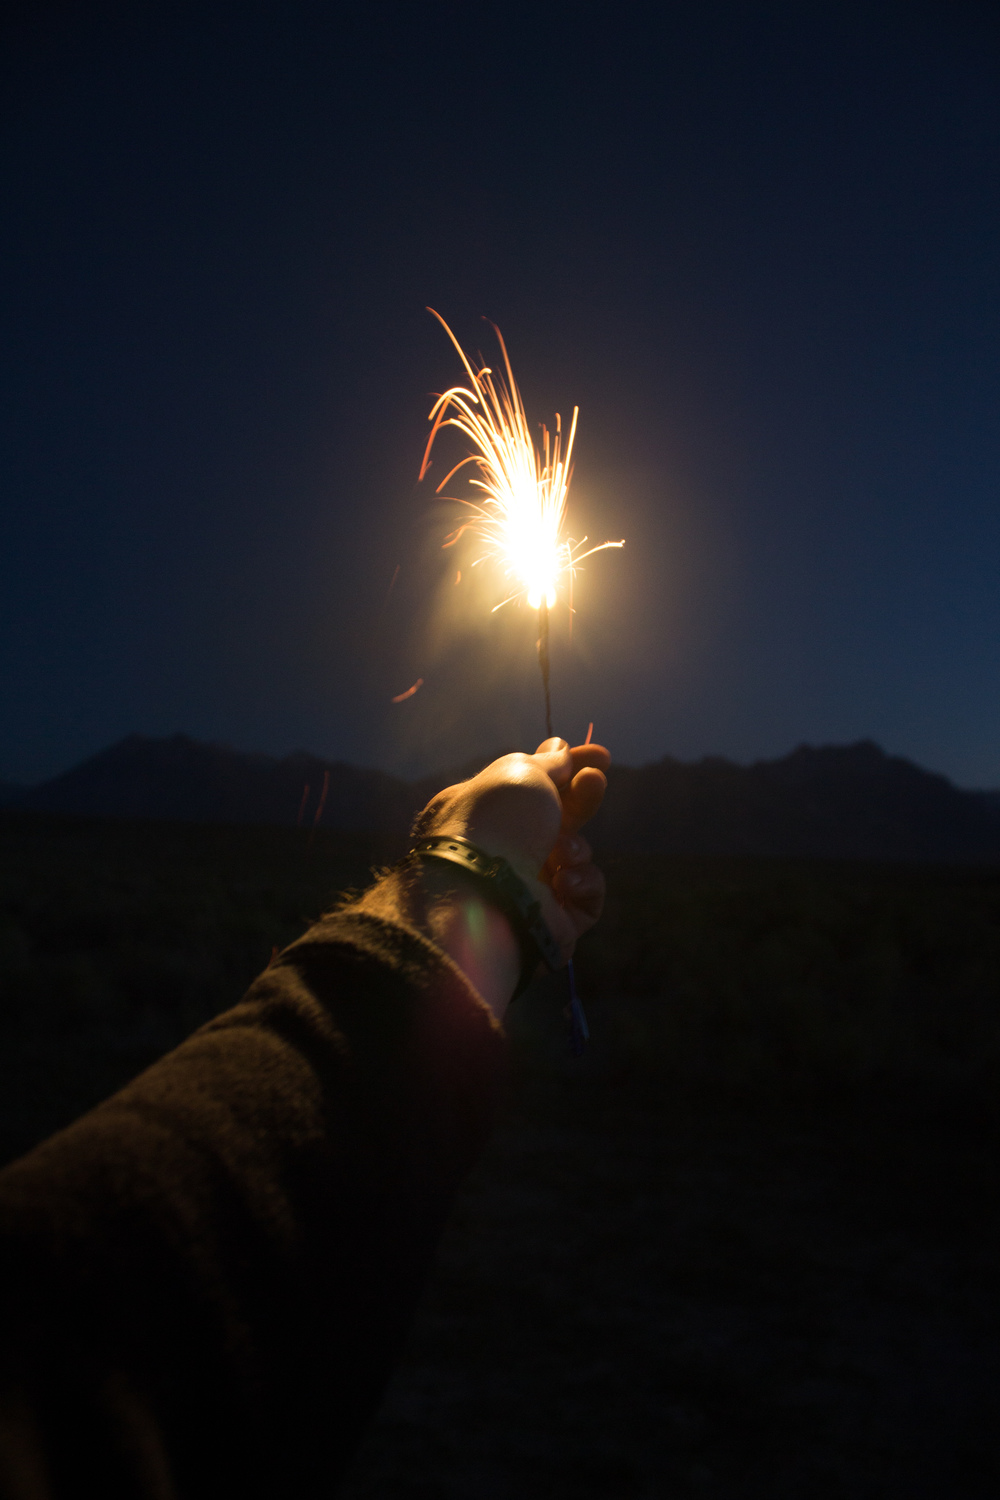 Celebrating the 4th on our first day in the mountains. We hiked a nearby hill from our camp and watched the Bishop firework show all the way from Owens Valley.